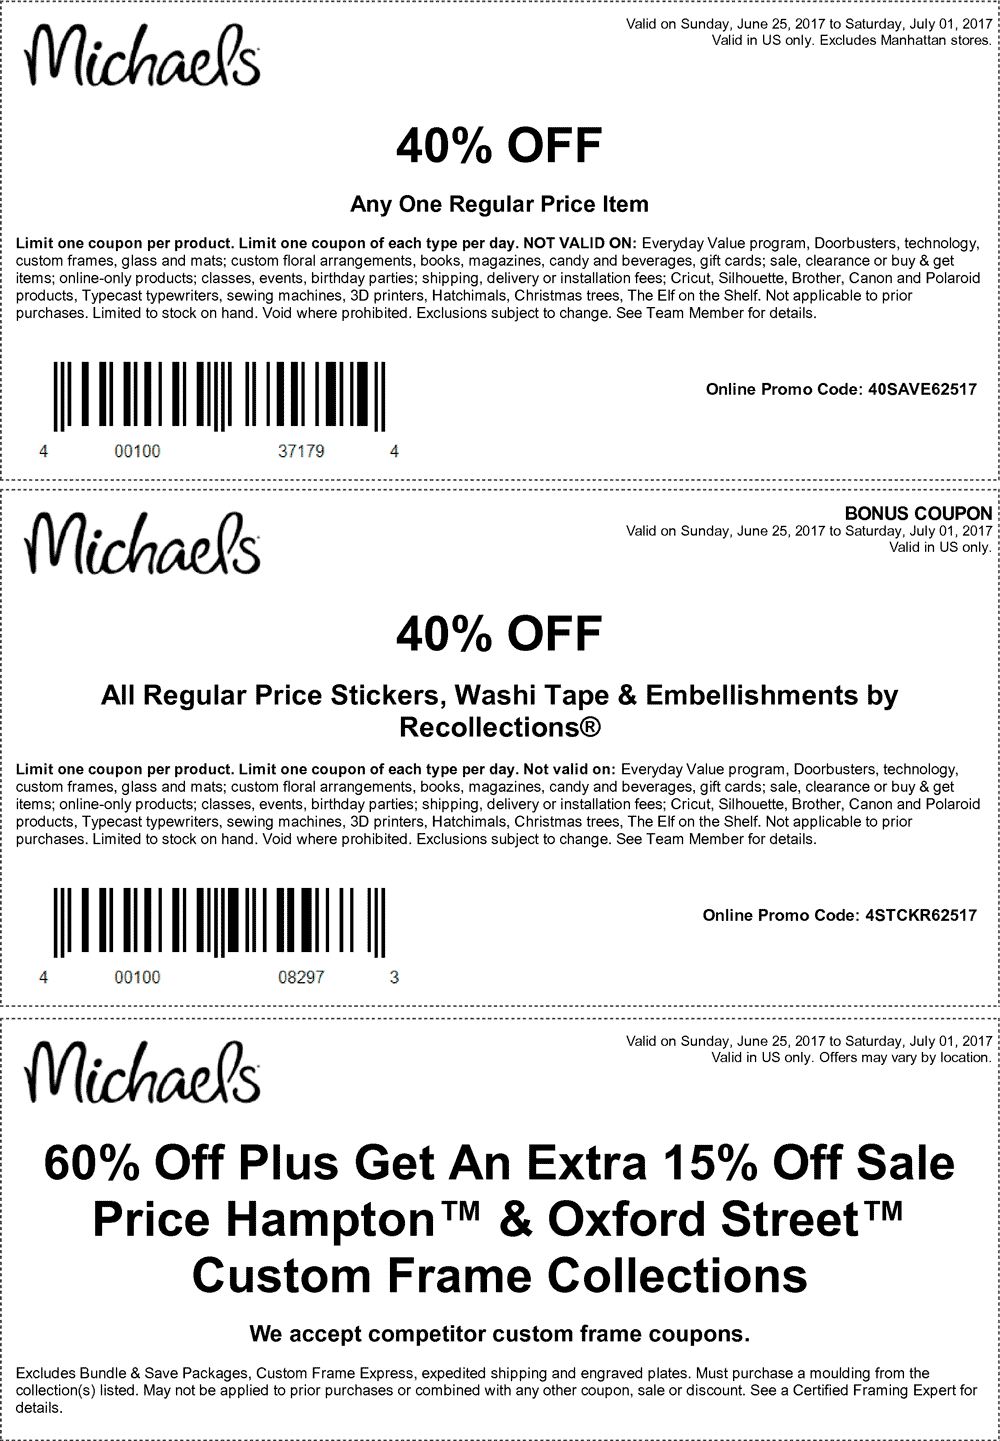 Michaels.com Promo Coupon 40% off a single item at Michaels, or online via promo code 40SAVE62517